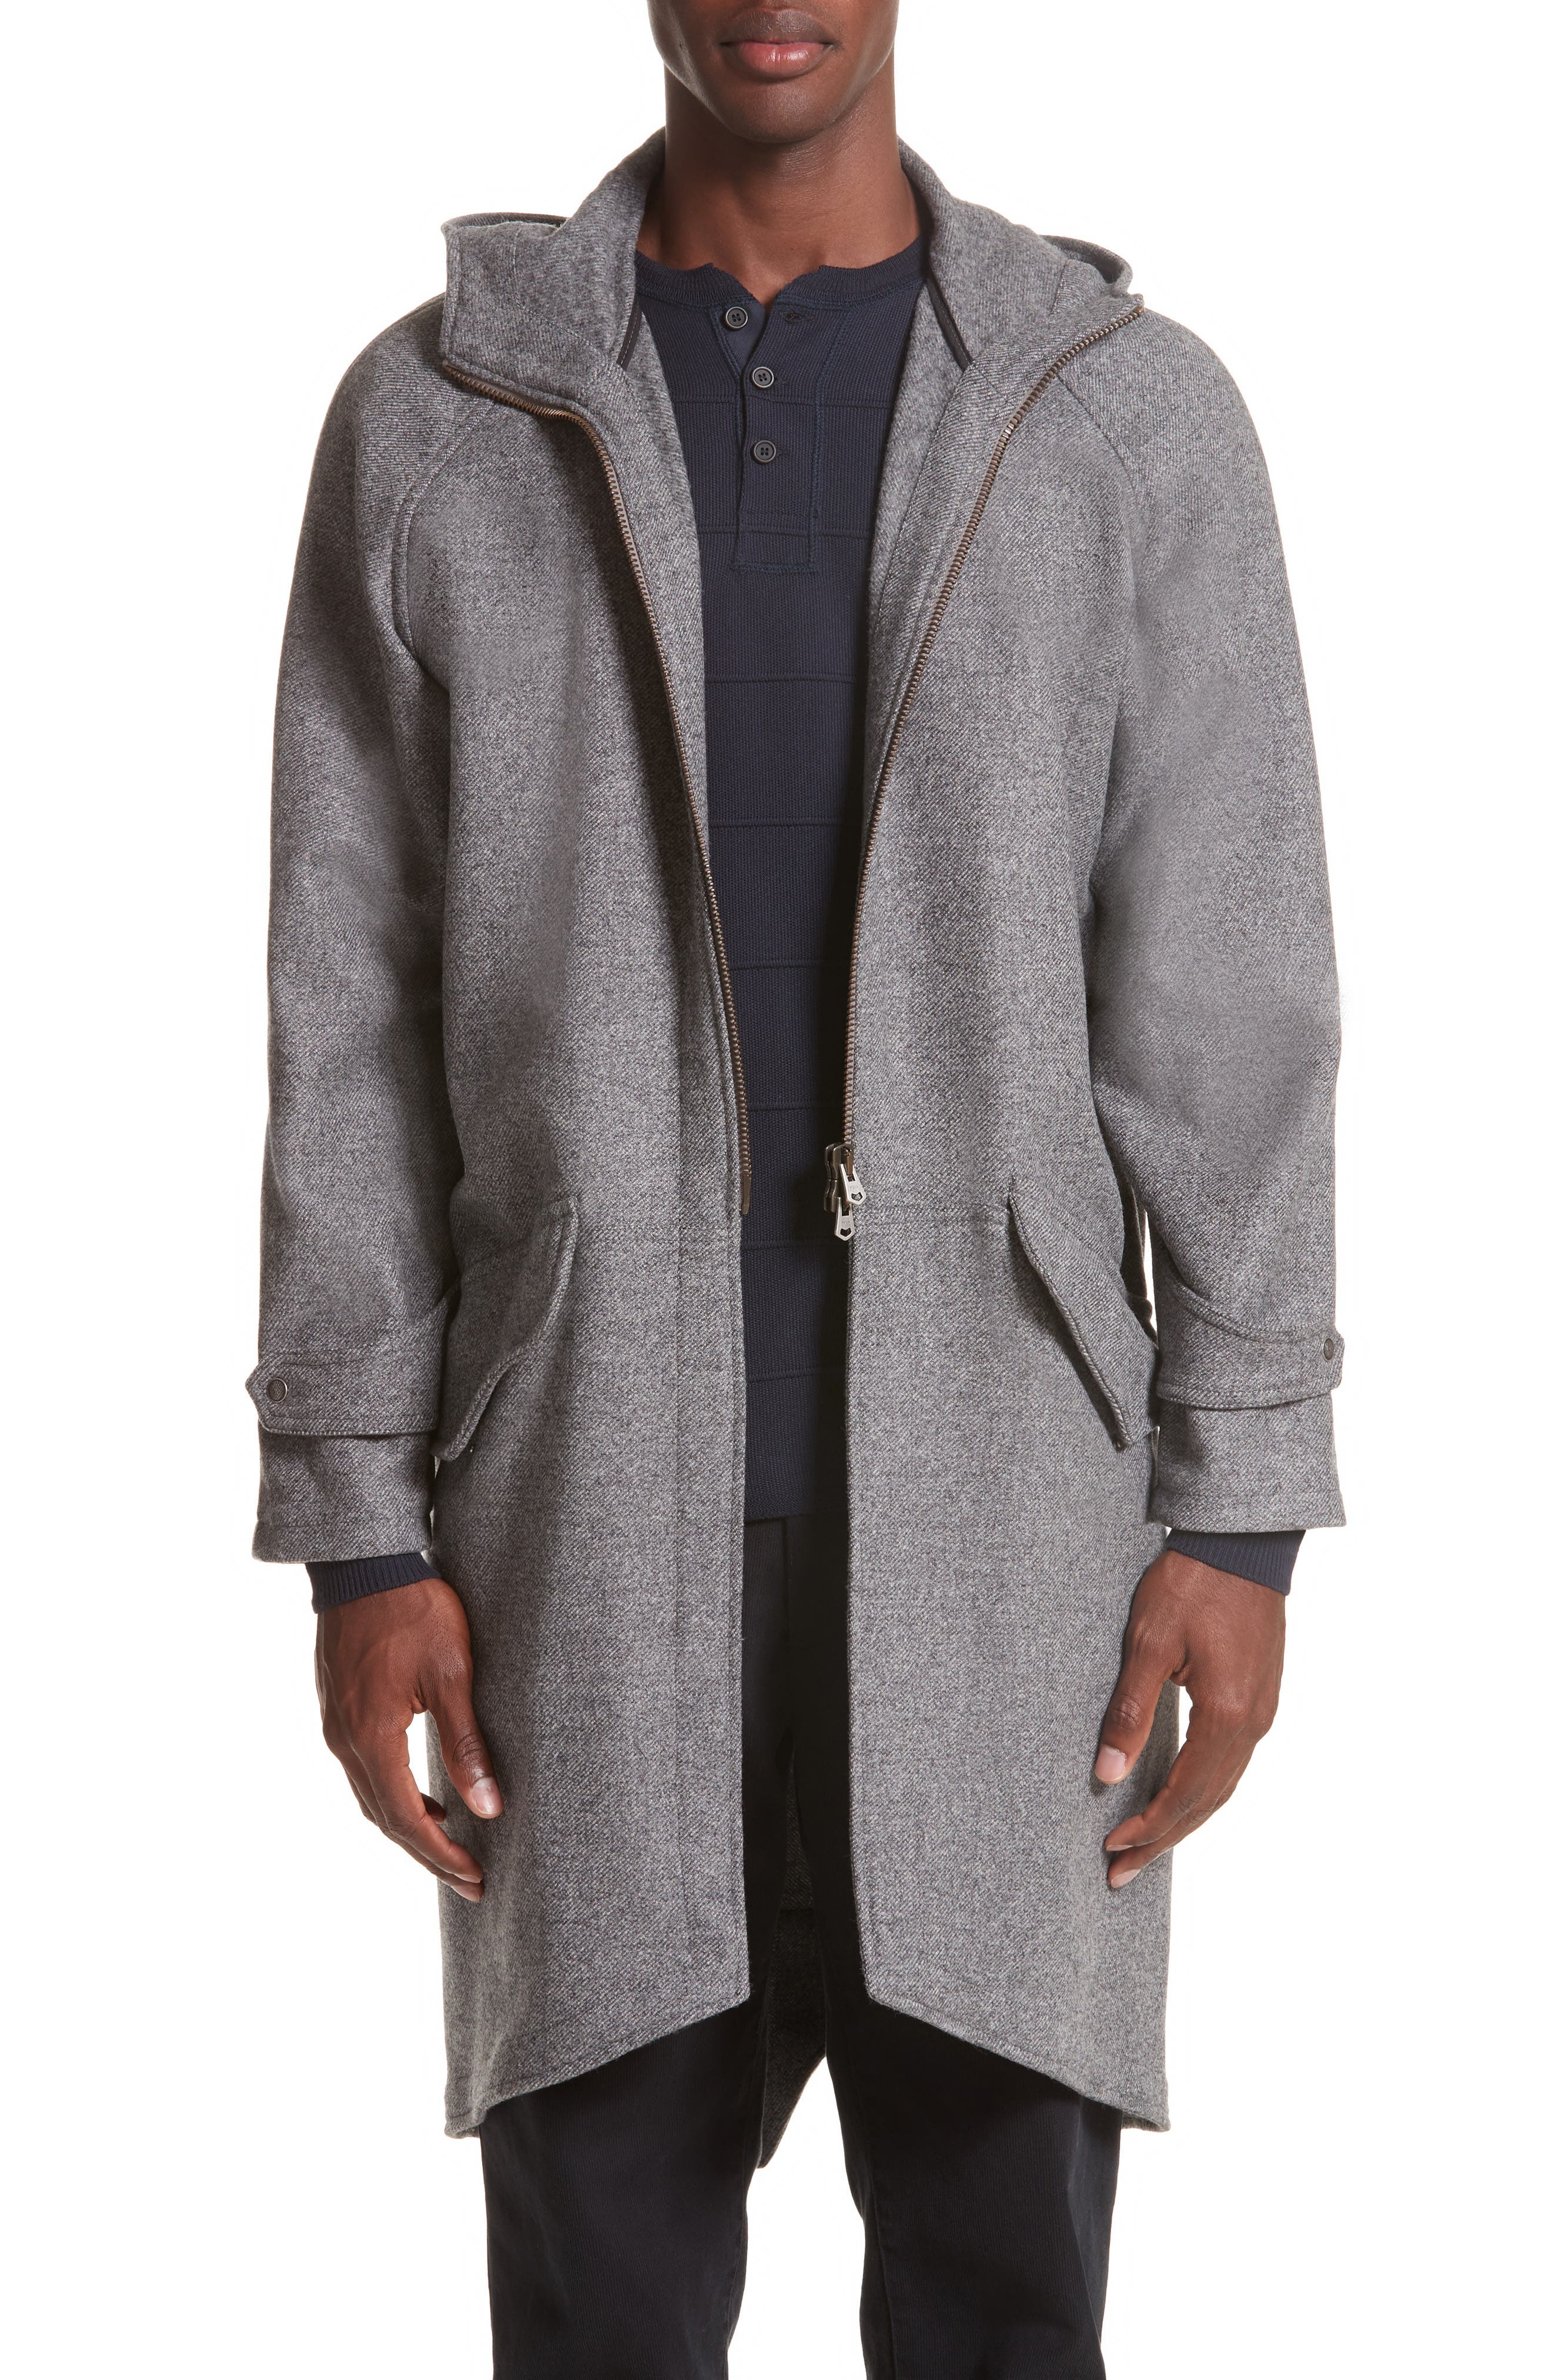 Napoli Wool & Cashmere Flannel Anorak,                             Main thumbnail 1, color,                             030